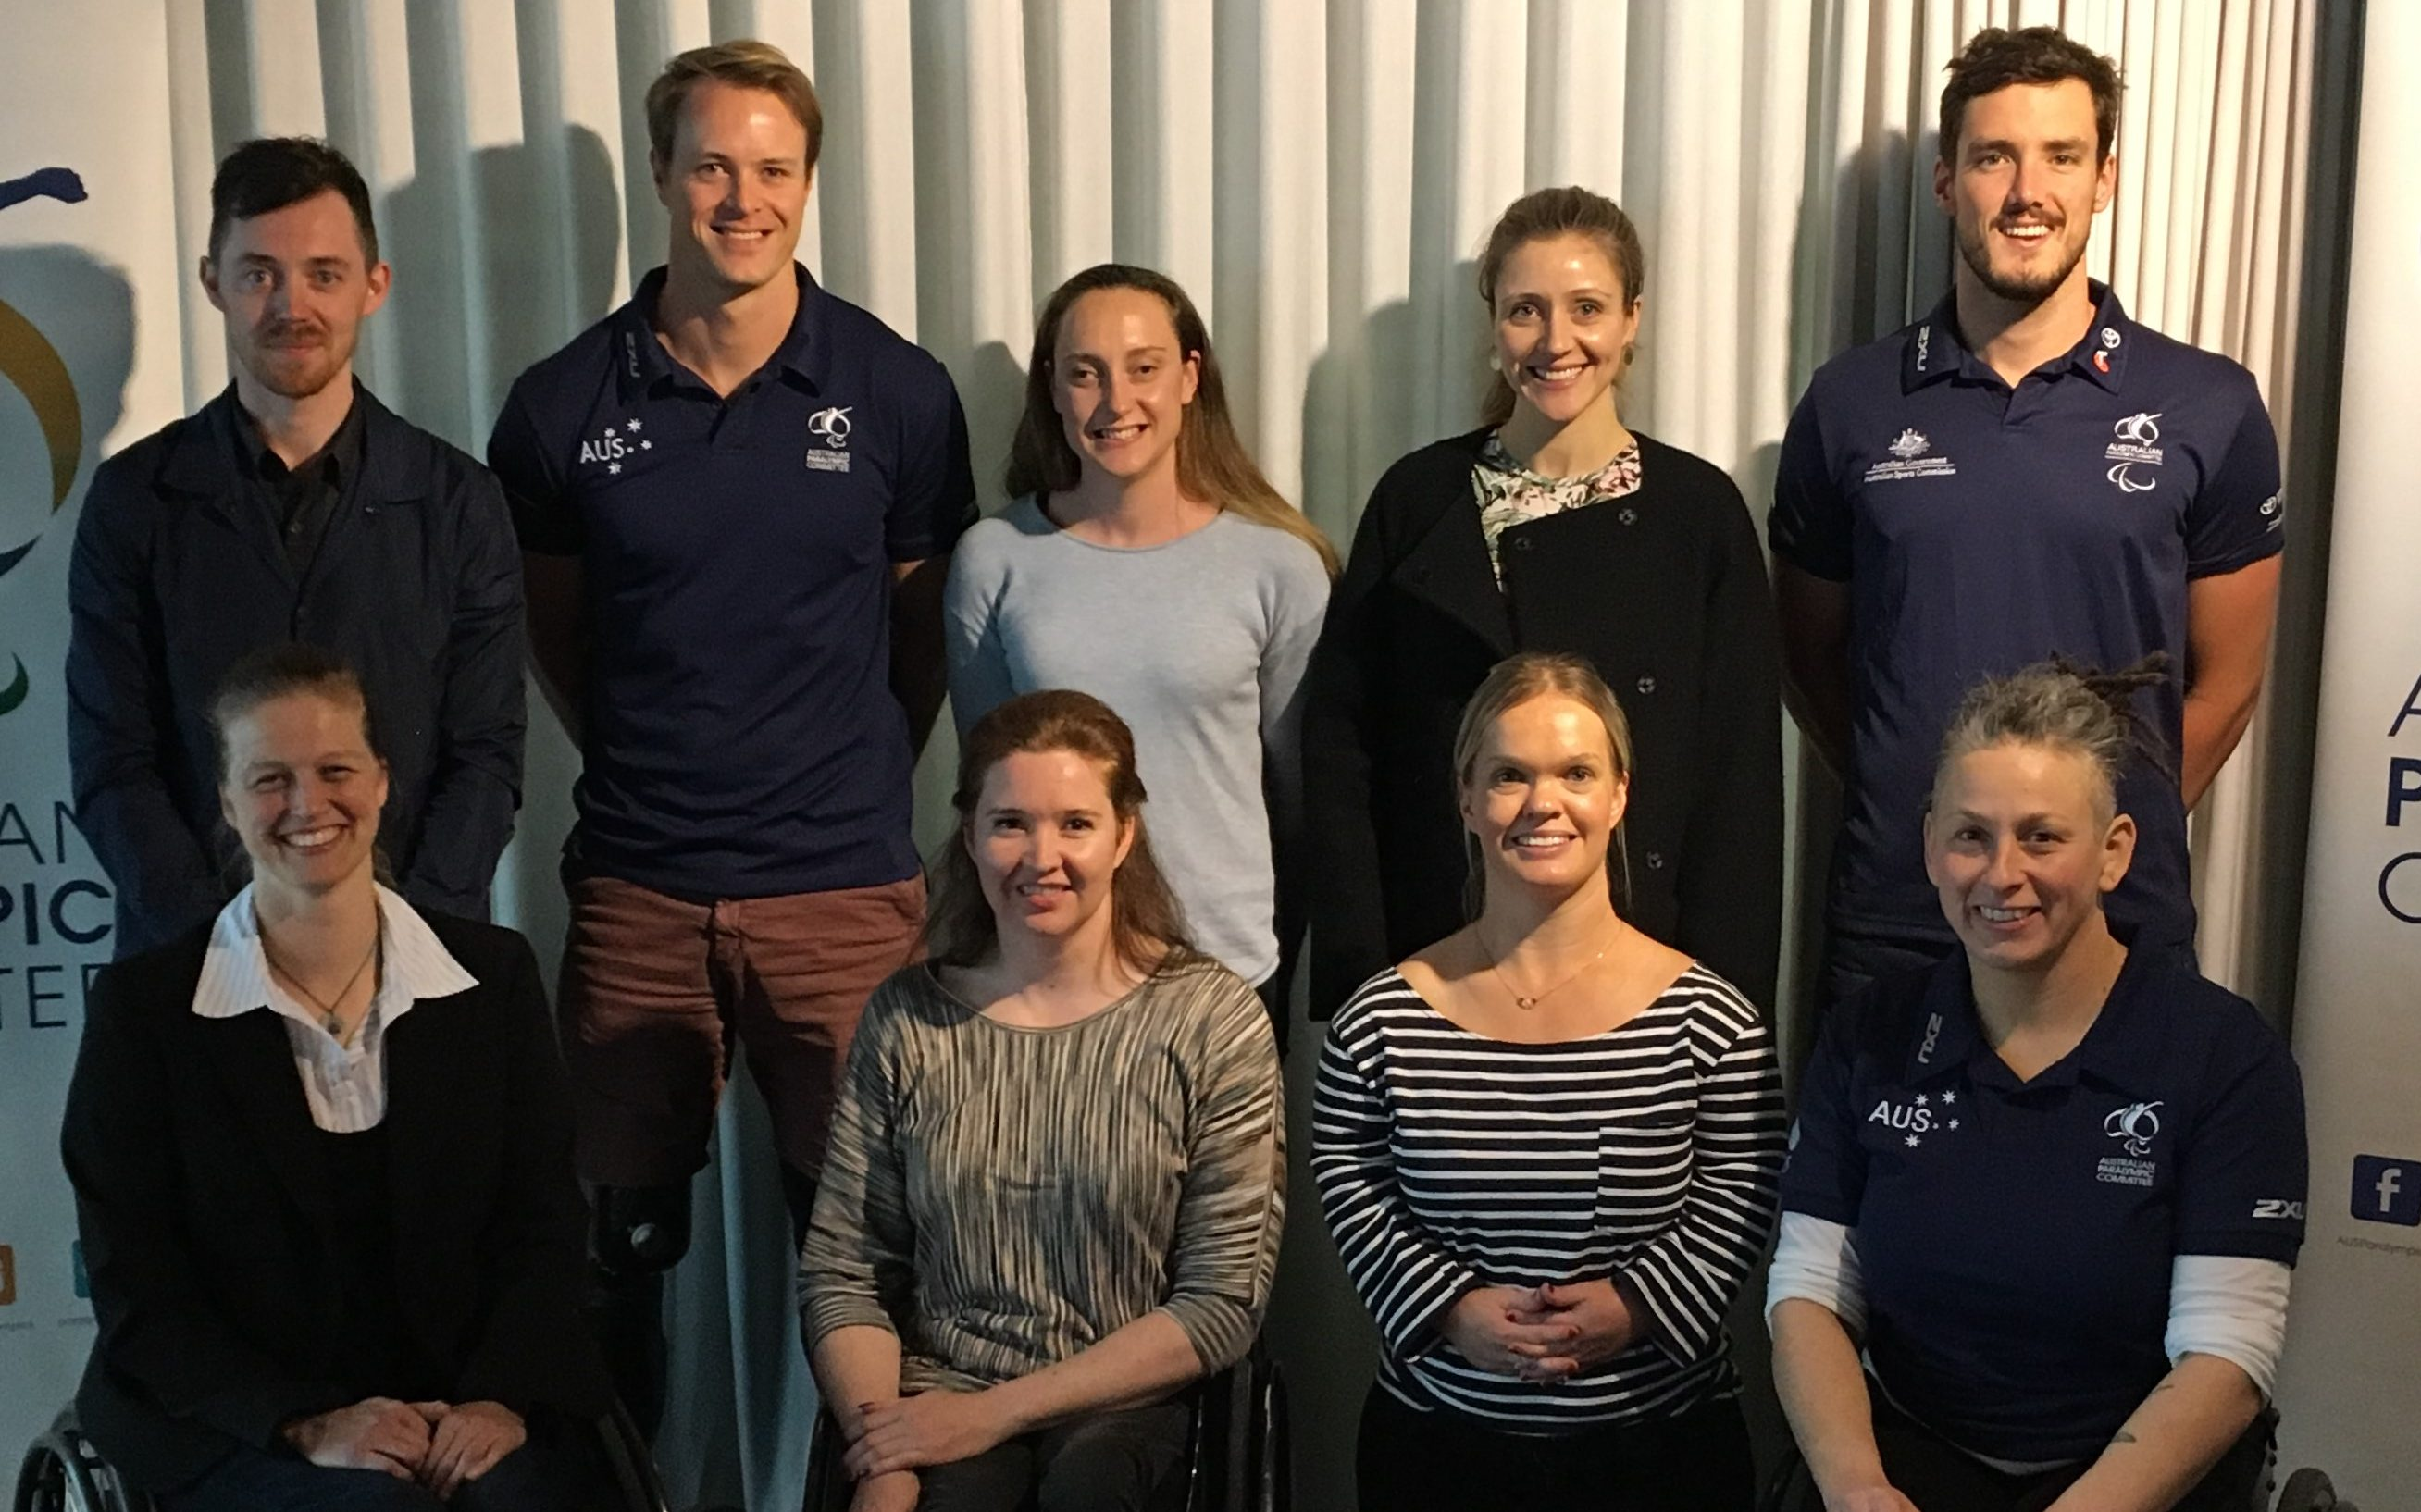 Athlete Commission established by the Australian Paralympic Committee